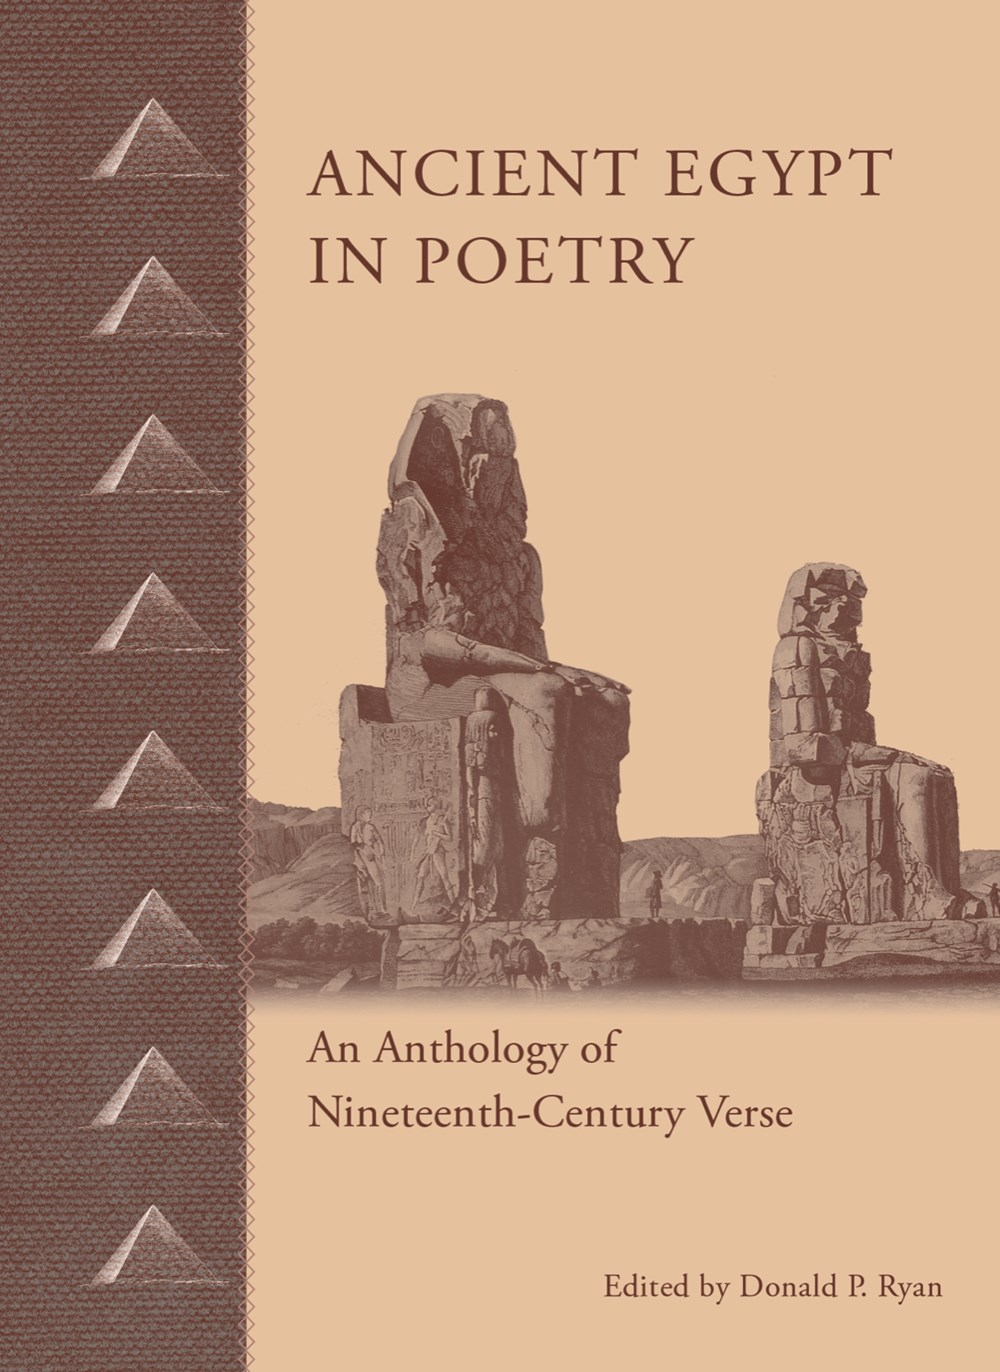 Ancient Egypt in Poetry An Anthology of NineteenthCentury Verse.jpg